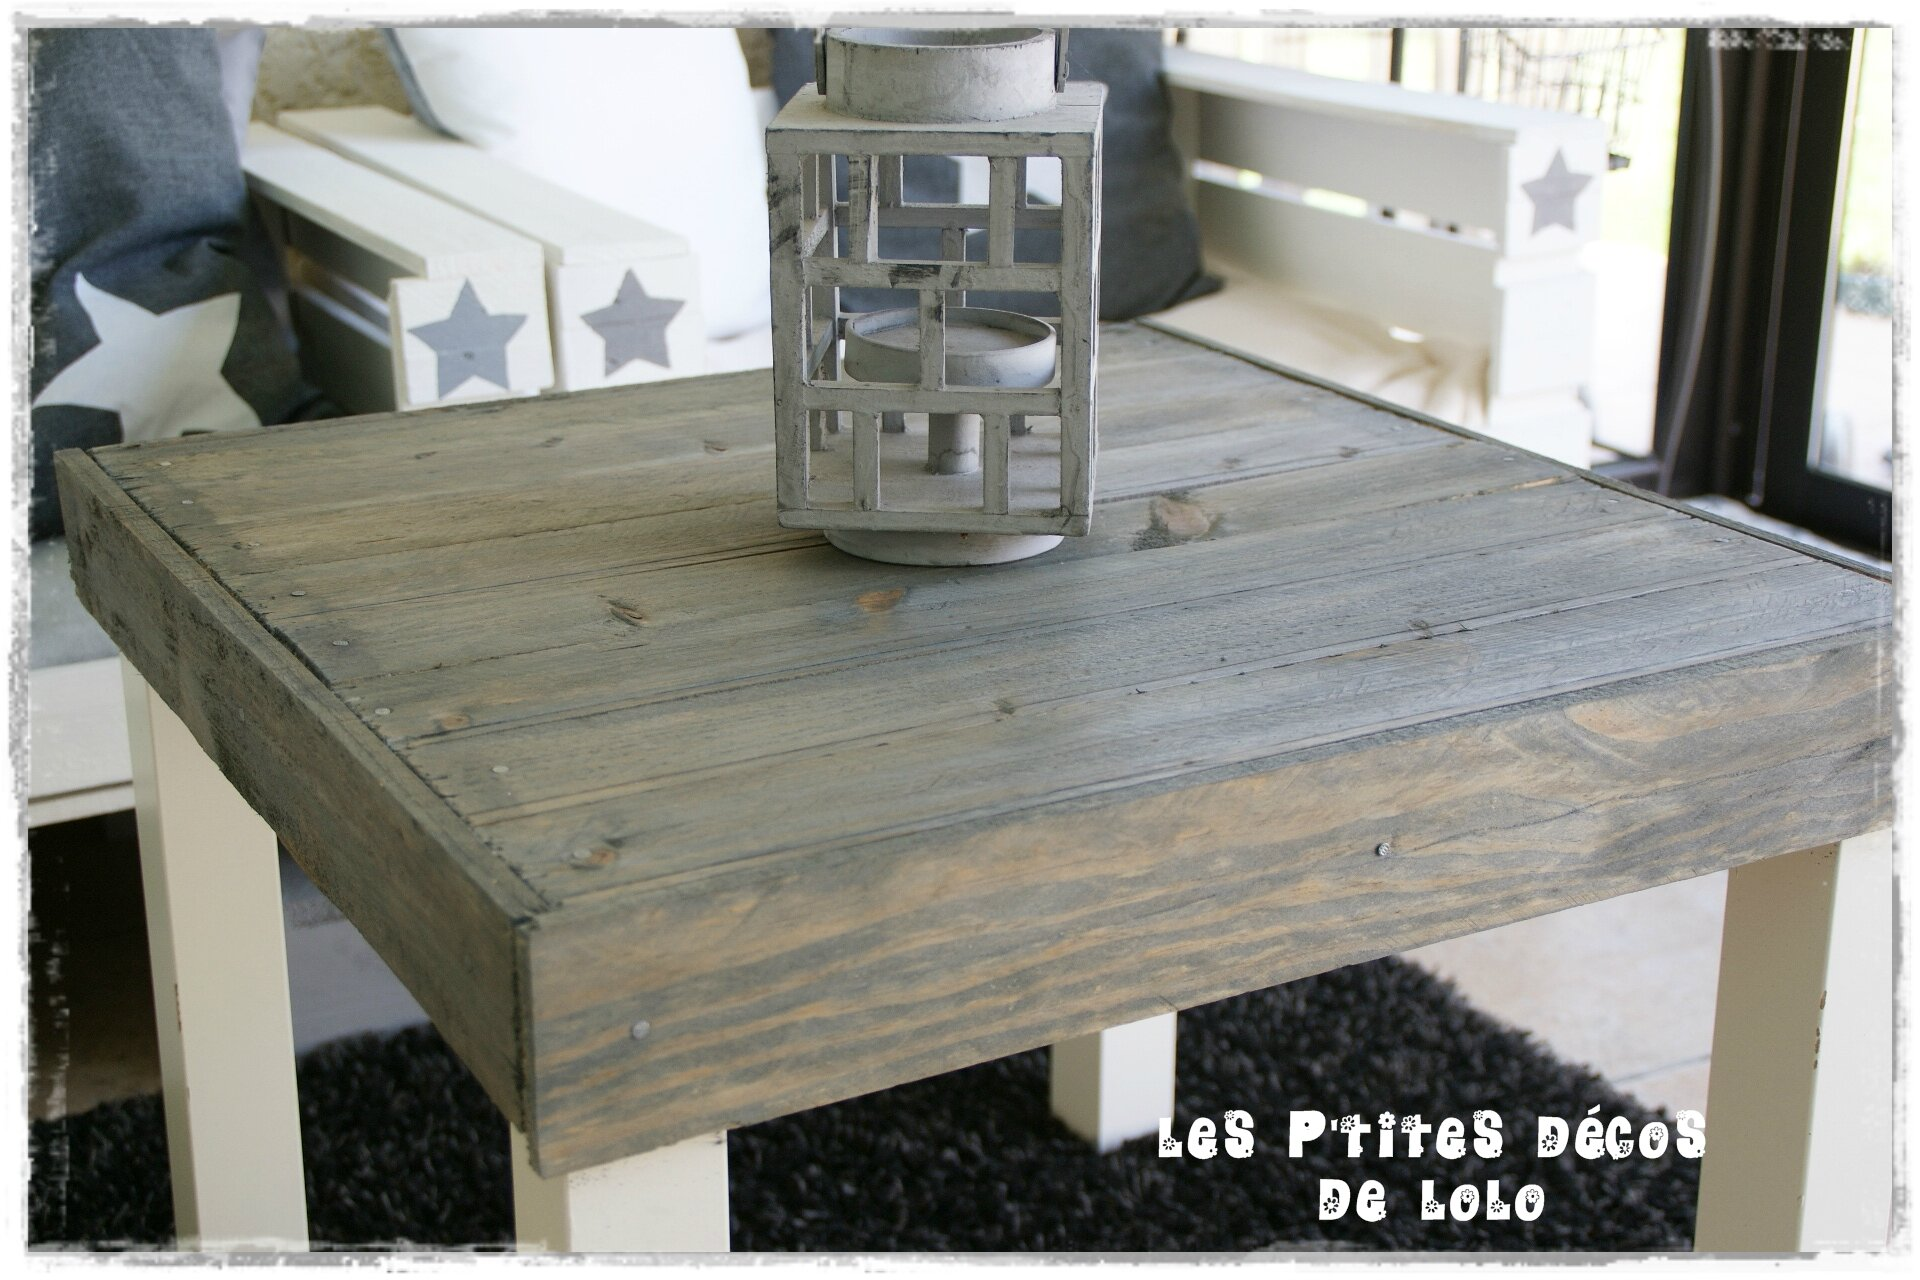 Les p 39 tites d cos de lolo - Customiser une table en bois ...